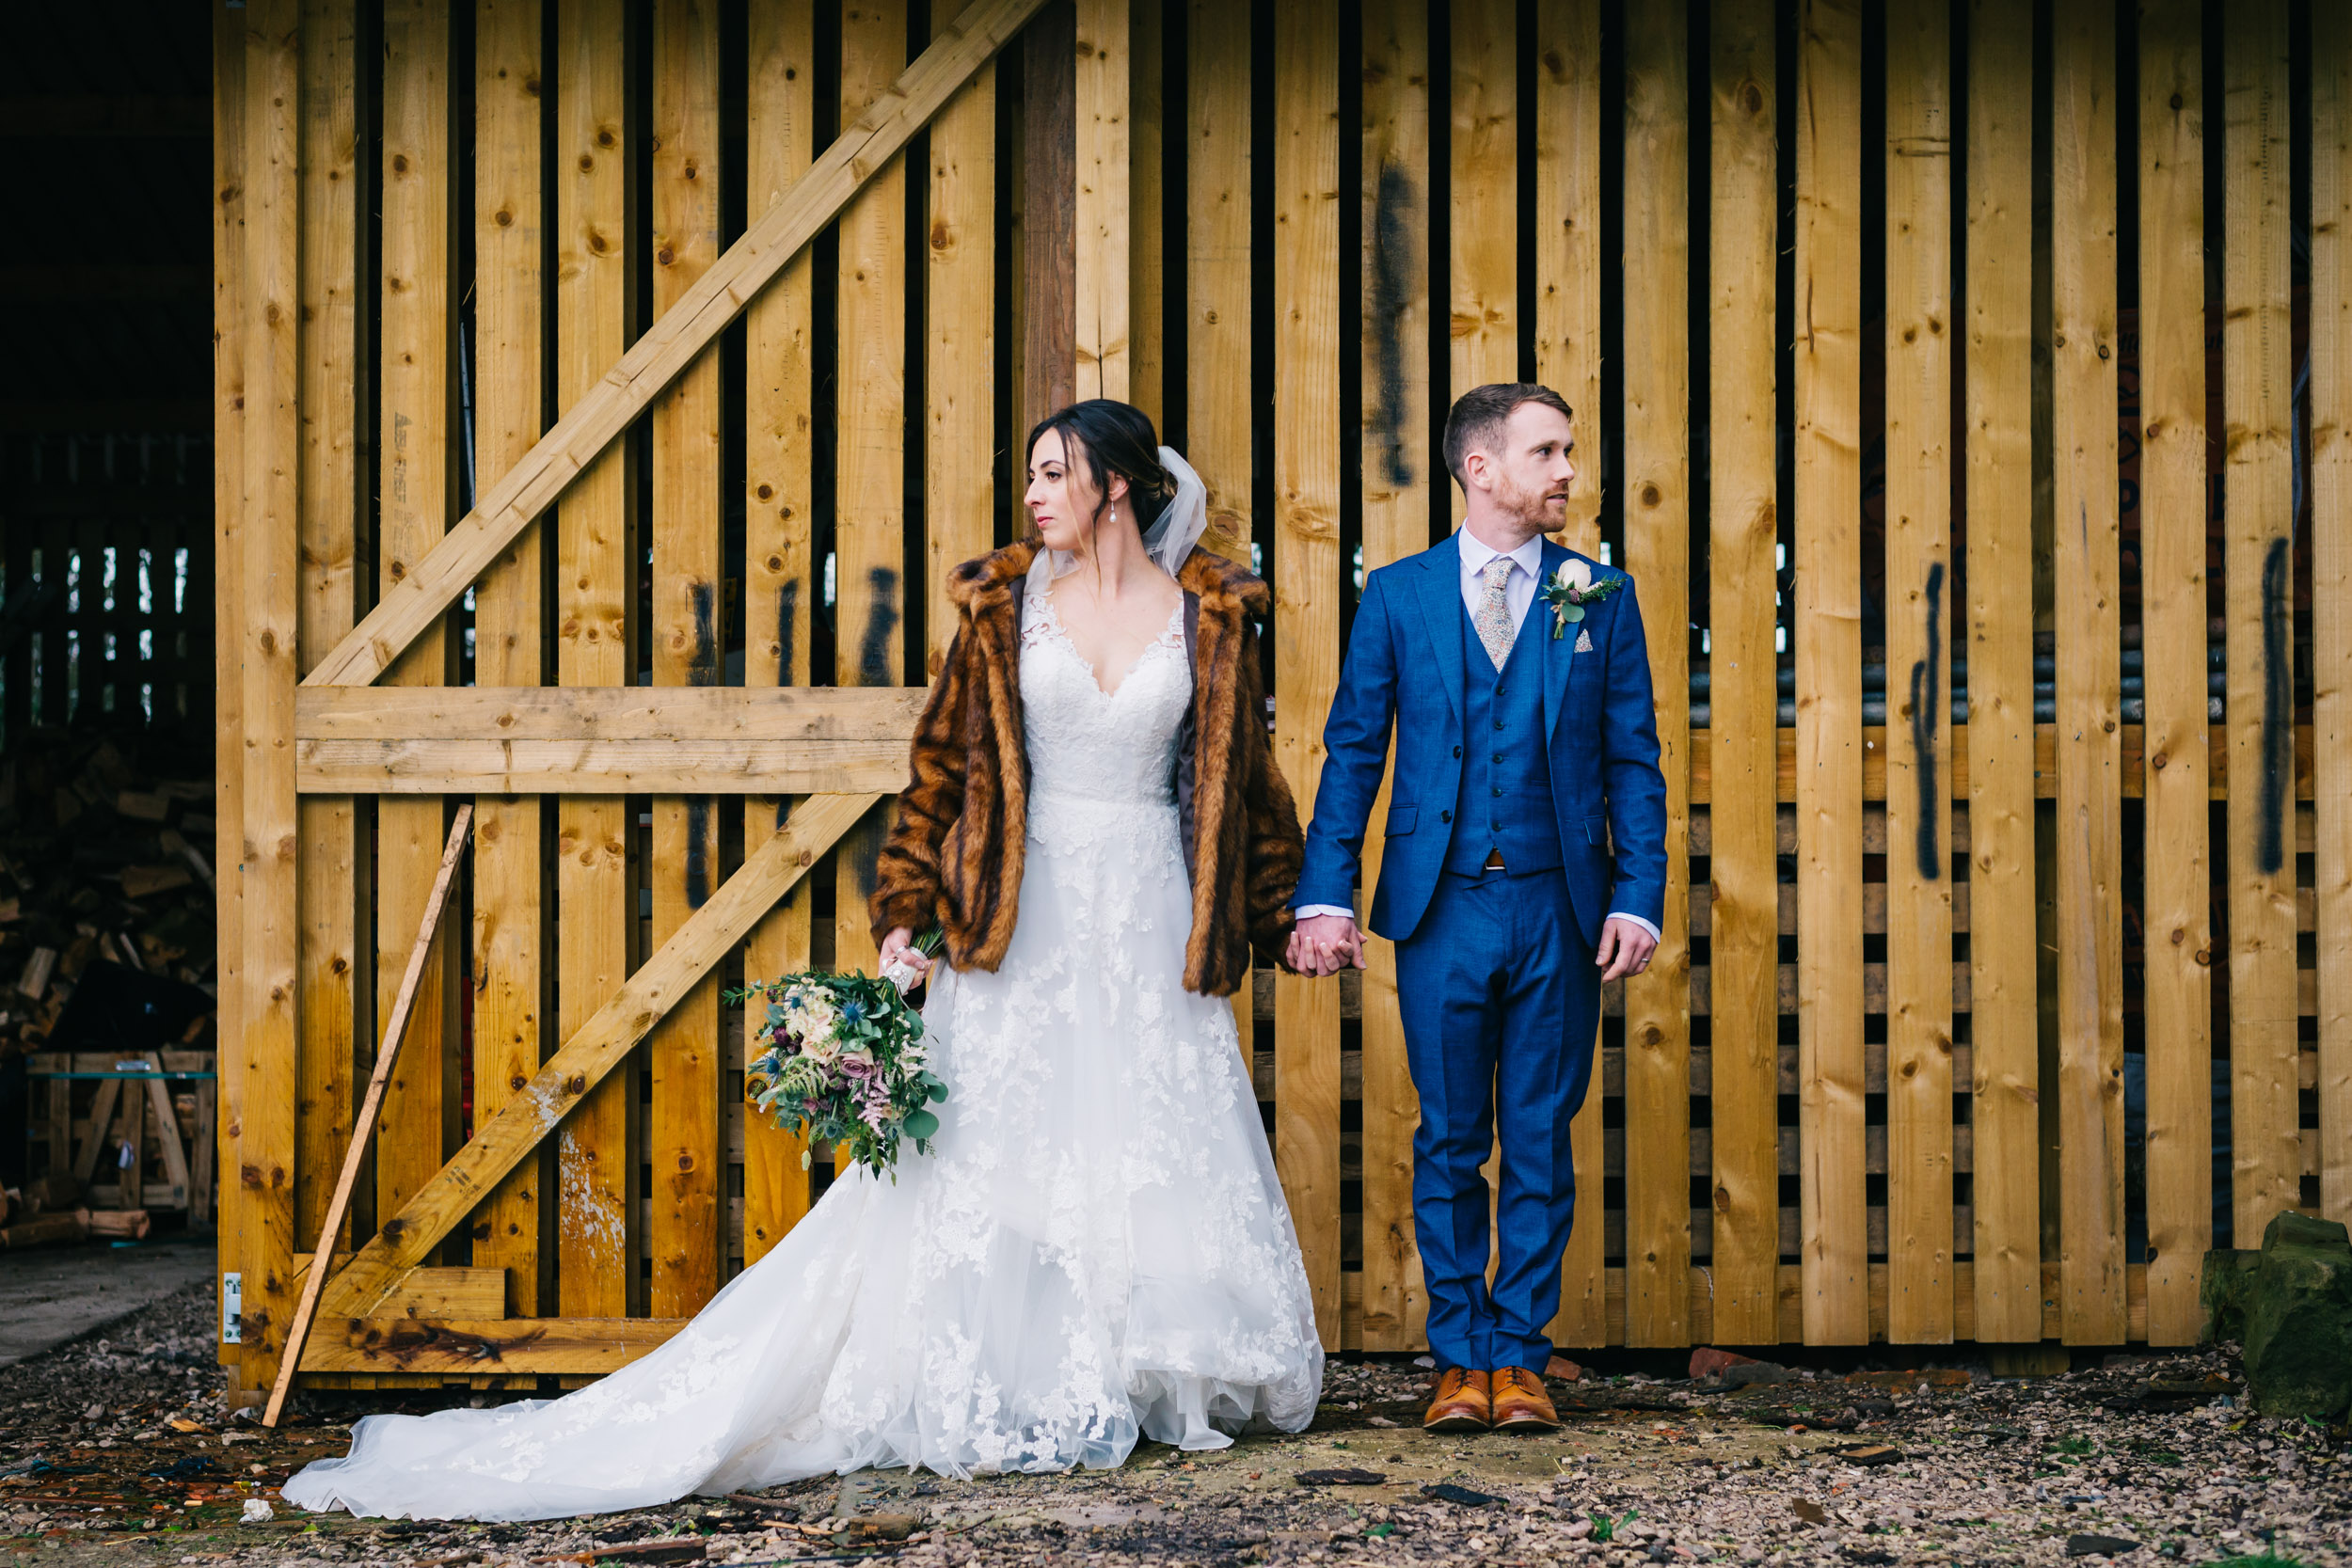 lancashire wedding photographer - wyresdale park wedding